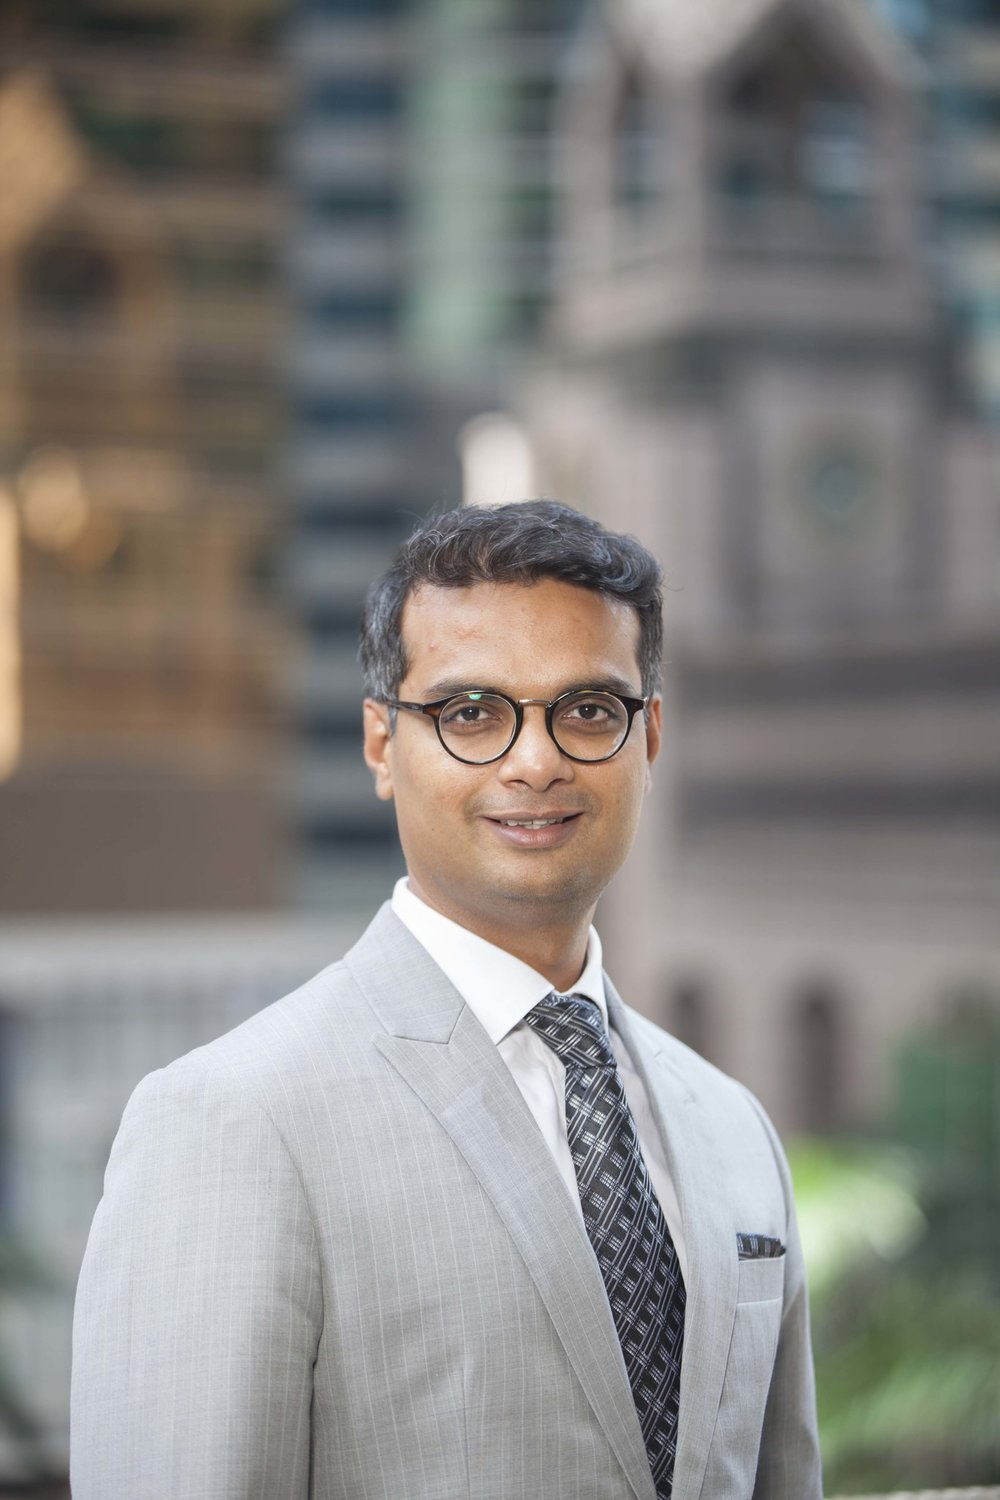 AUM's Chief Executive Officer, Mr. Vishal Doshi